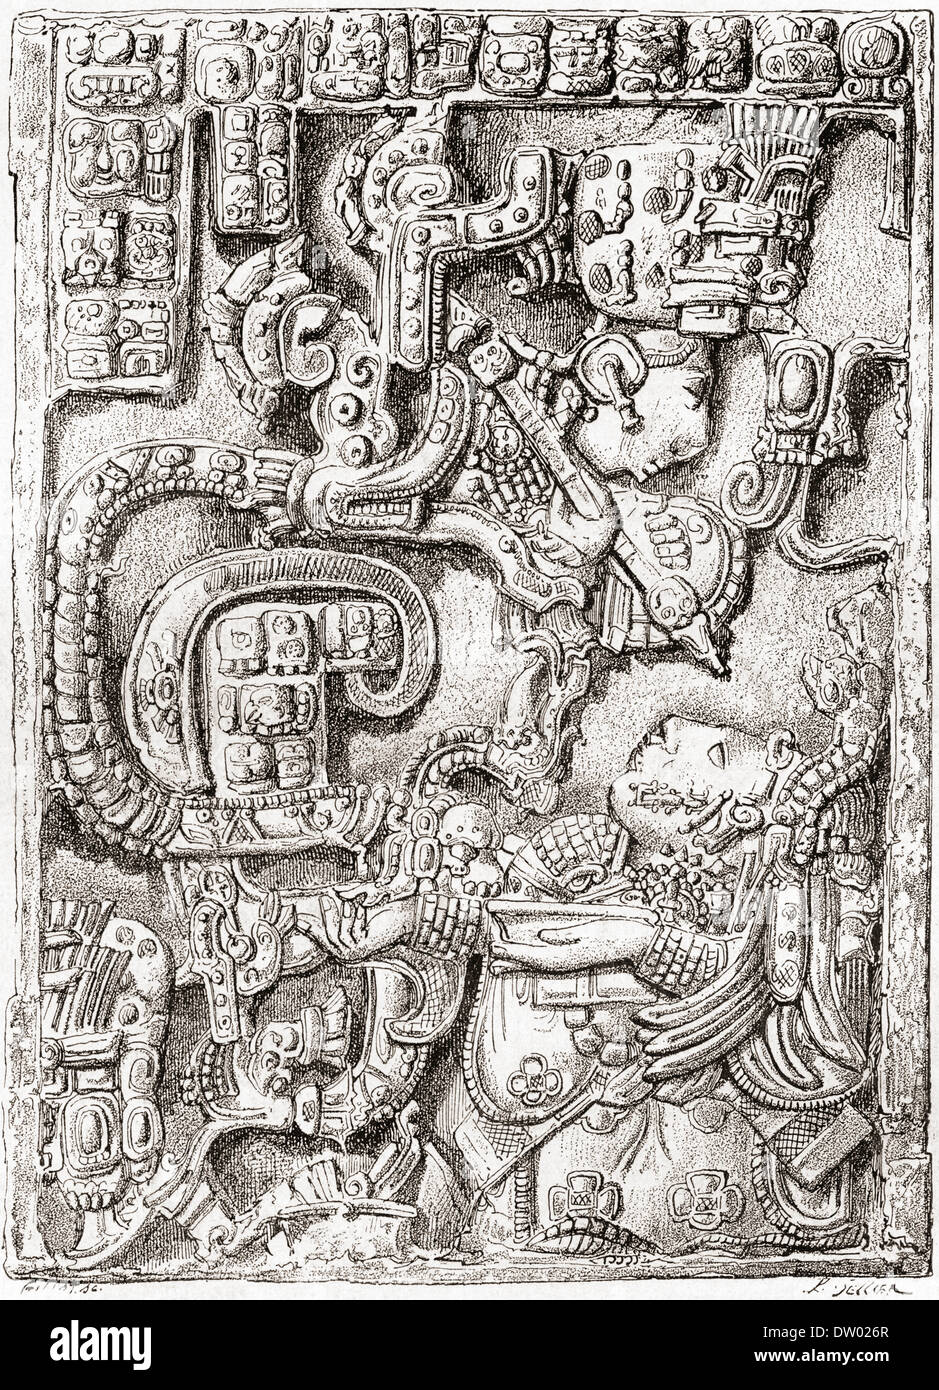 Lintel 25 of Yaxchilan Structure 23 from the ancient Mayan city of Yaxchilan, Chiapas, Mexico. - Stock Image